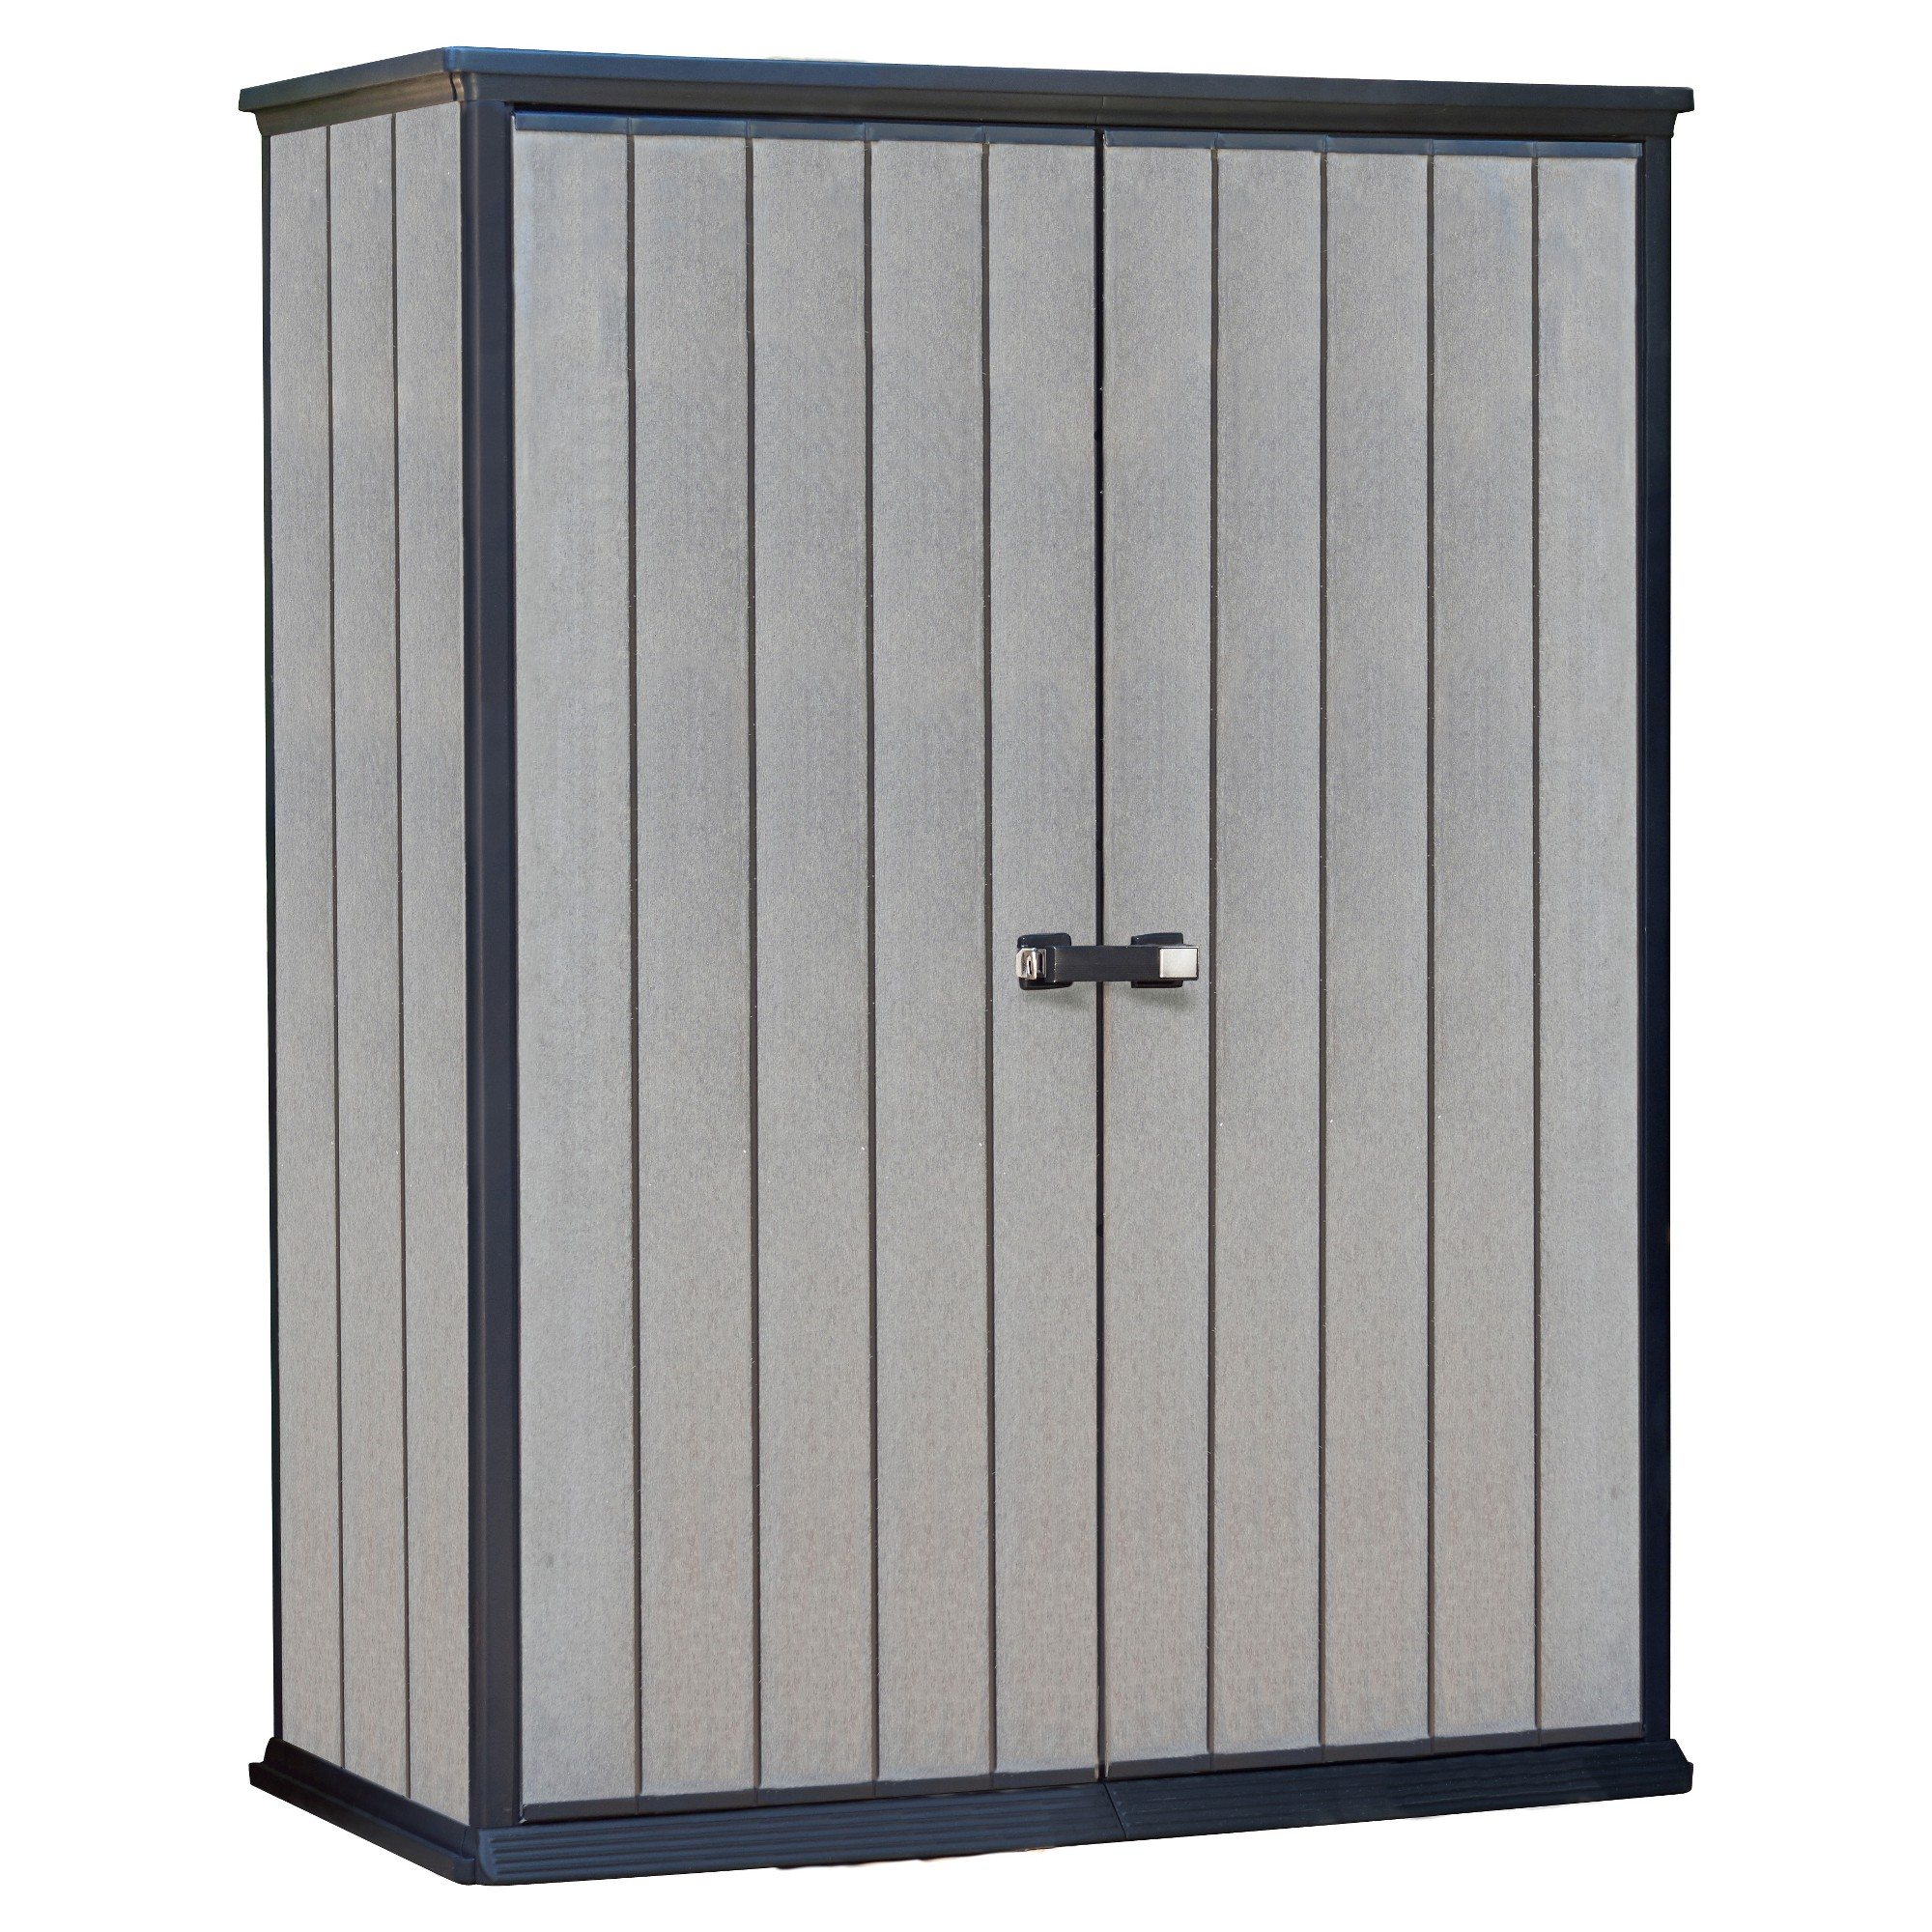 High Store Customizable Horizontal Outdoor Storage Shed Gray Keter Small Outdoor Storage Garden Storage Shed Shed Storage